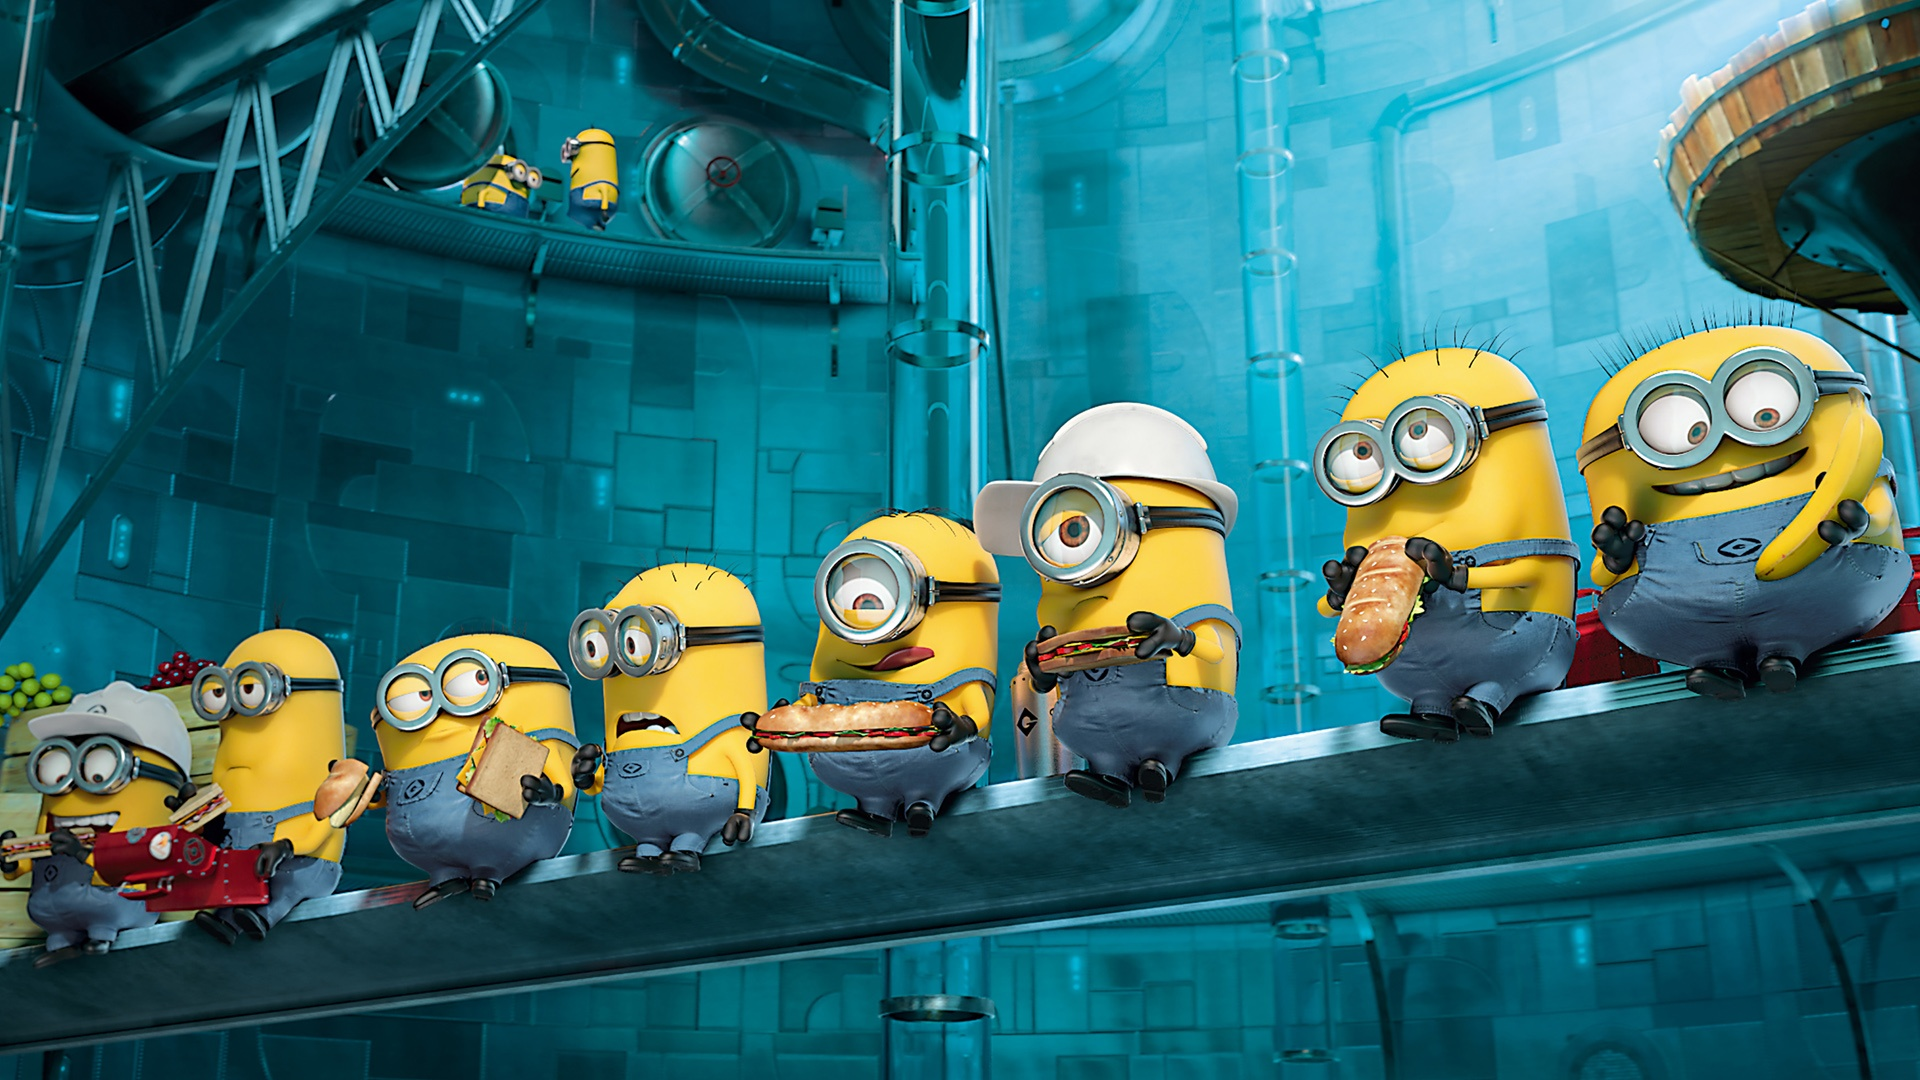 paradise-minions-despicable-me-2-wallpaper